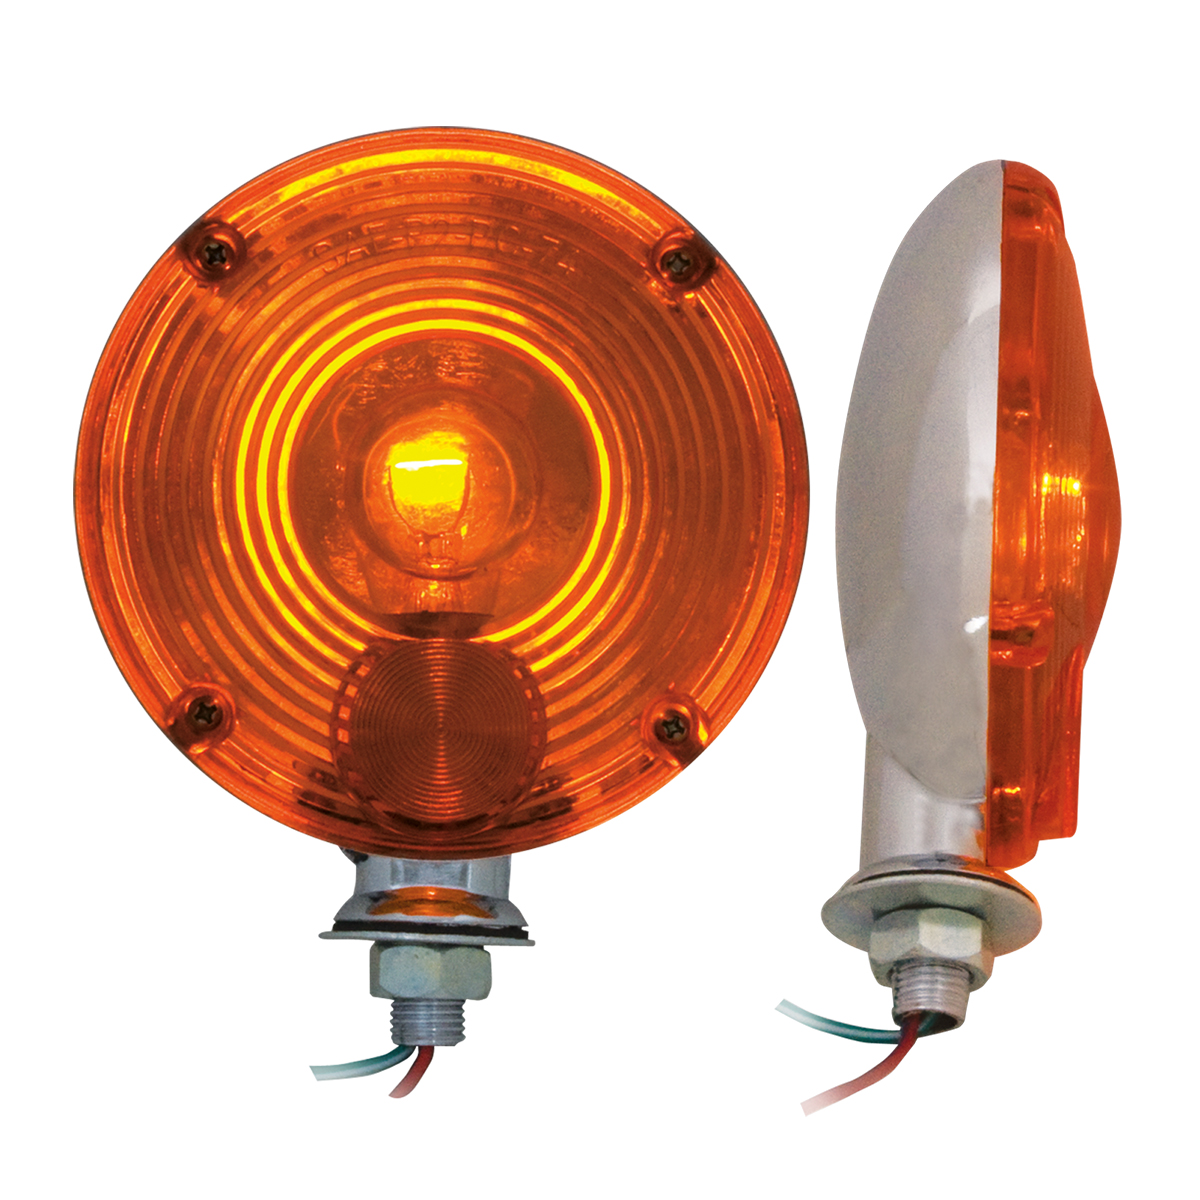 "#80321 4"" Single Face Light Duty Pedestal Amber Light"